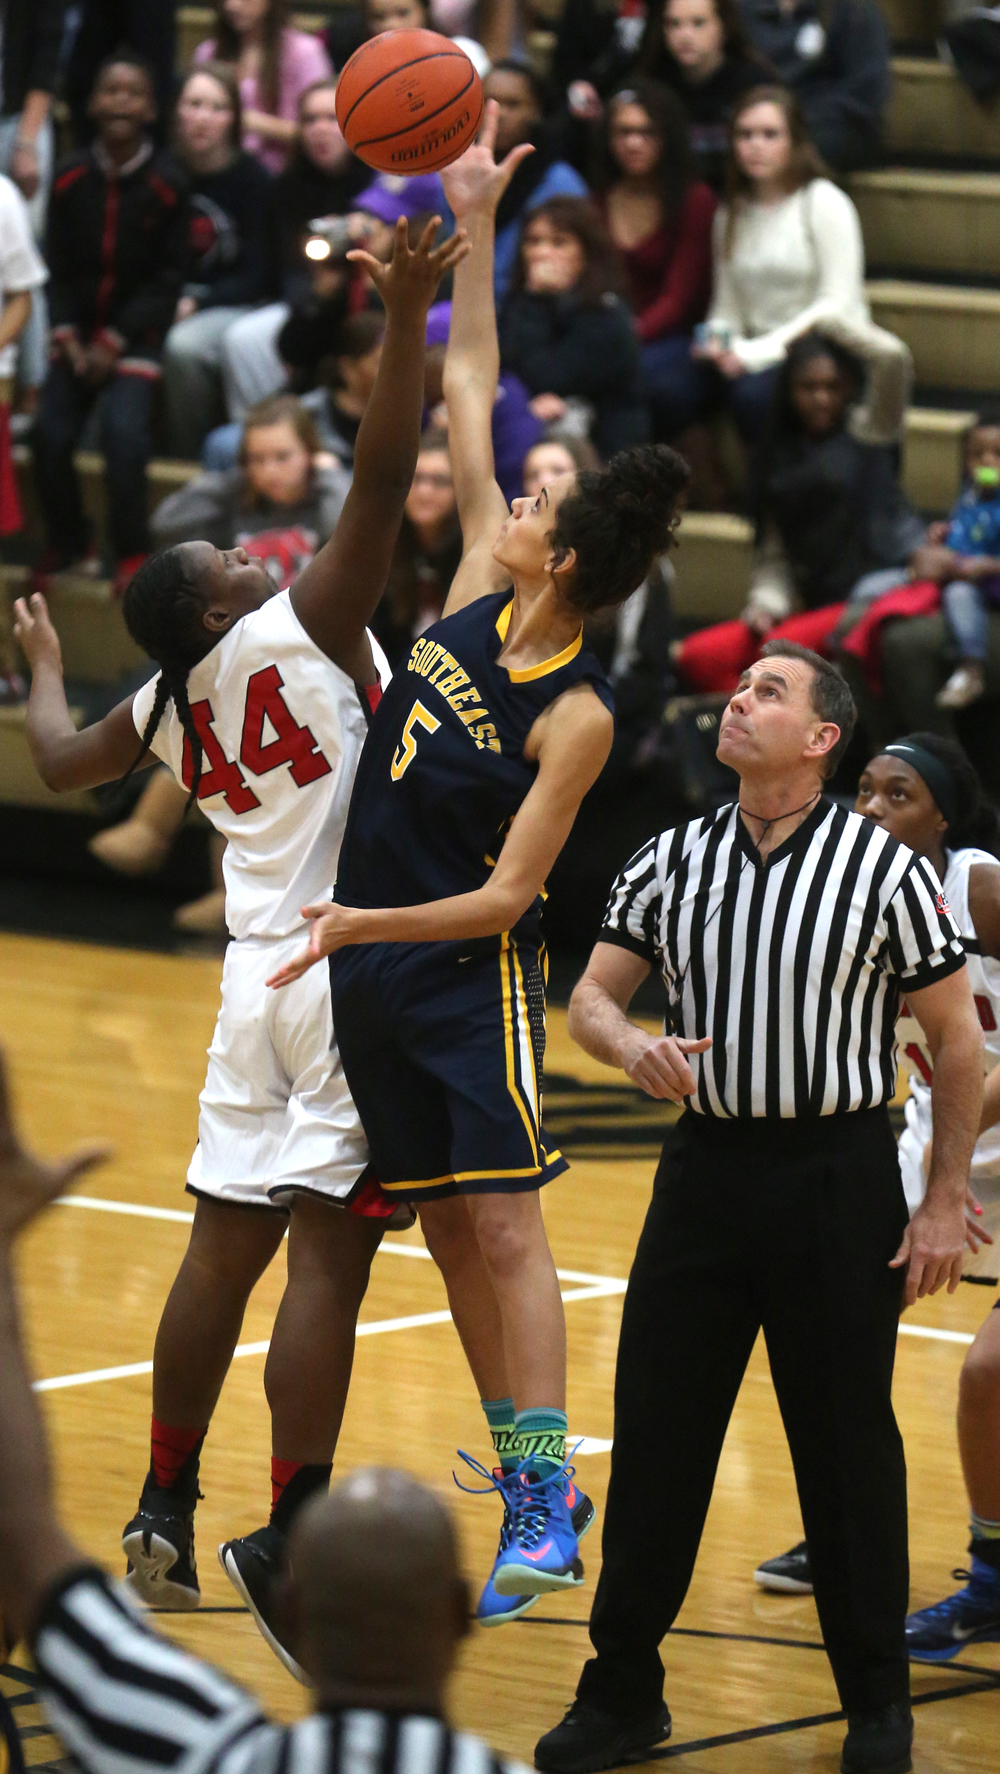 Tipping off to start the game was Springfield's Montshianna Pulliam at left and Southeast player Lunden Henry. Springfield High defeated Southeast 49-35 during second night action at the Girls City Basketball Tournament held at Belz Gym at Sacred Heart-Griffin's west campus in Springfield on Wednesday evening, Jan. 28, 2015. David Spencer/The State Journal-Register